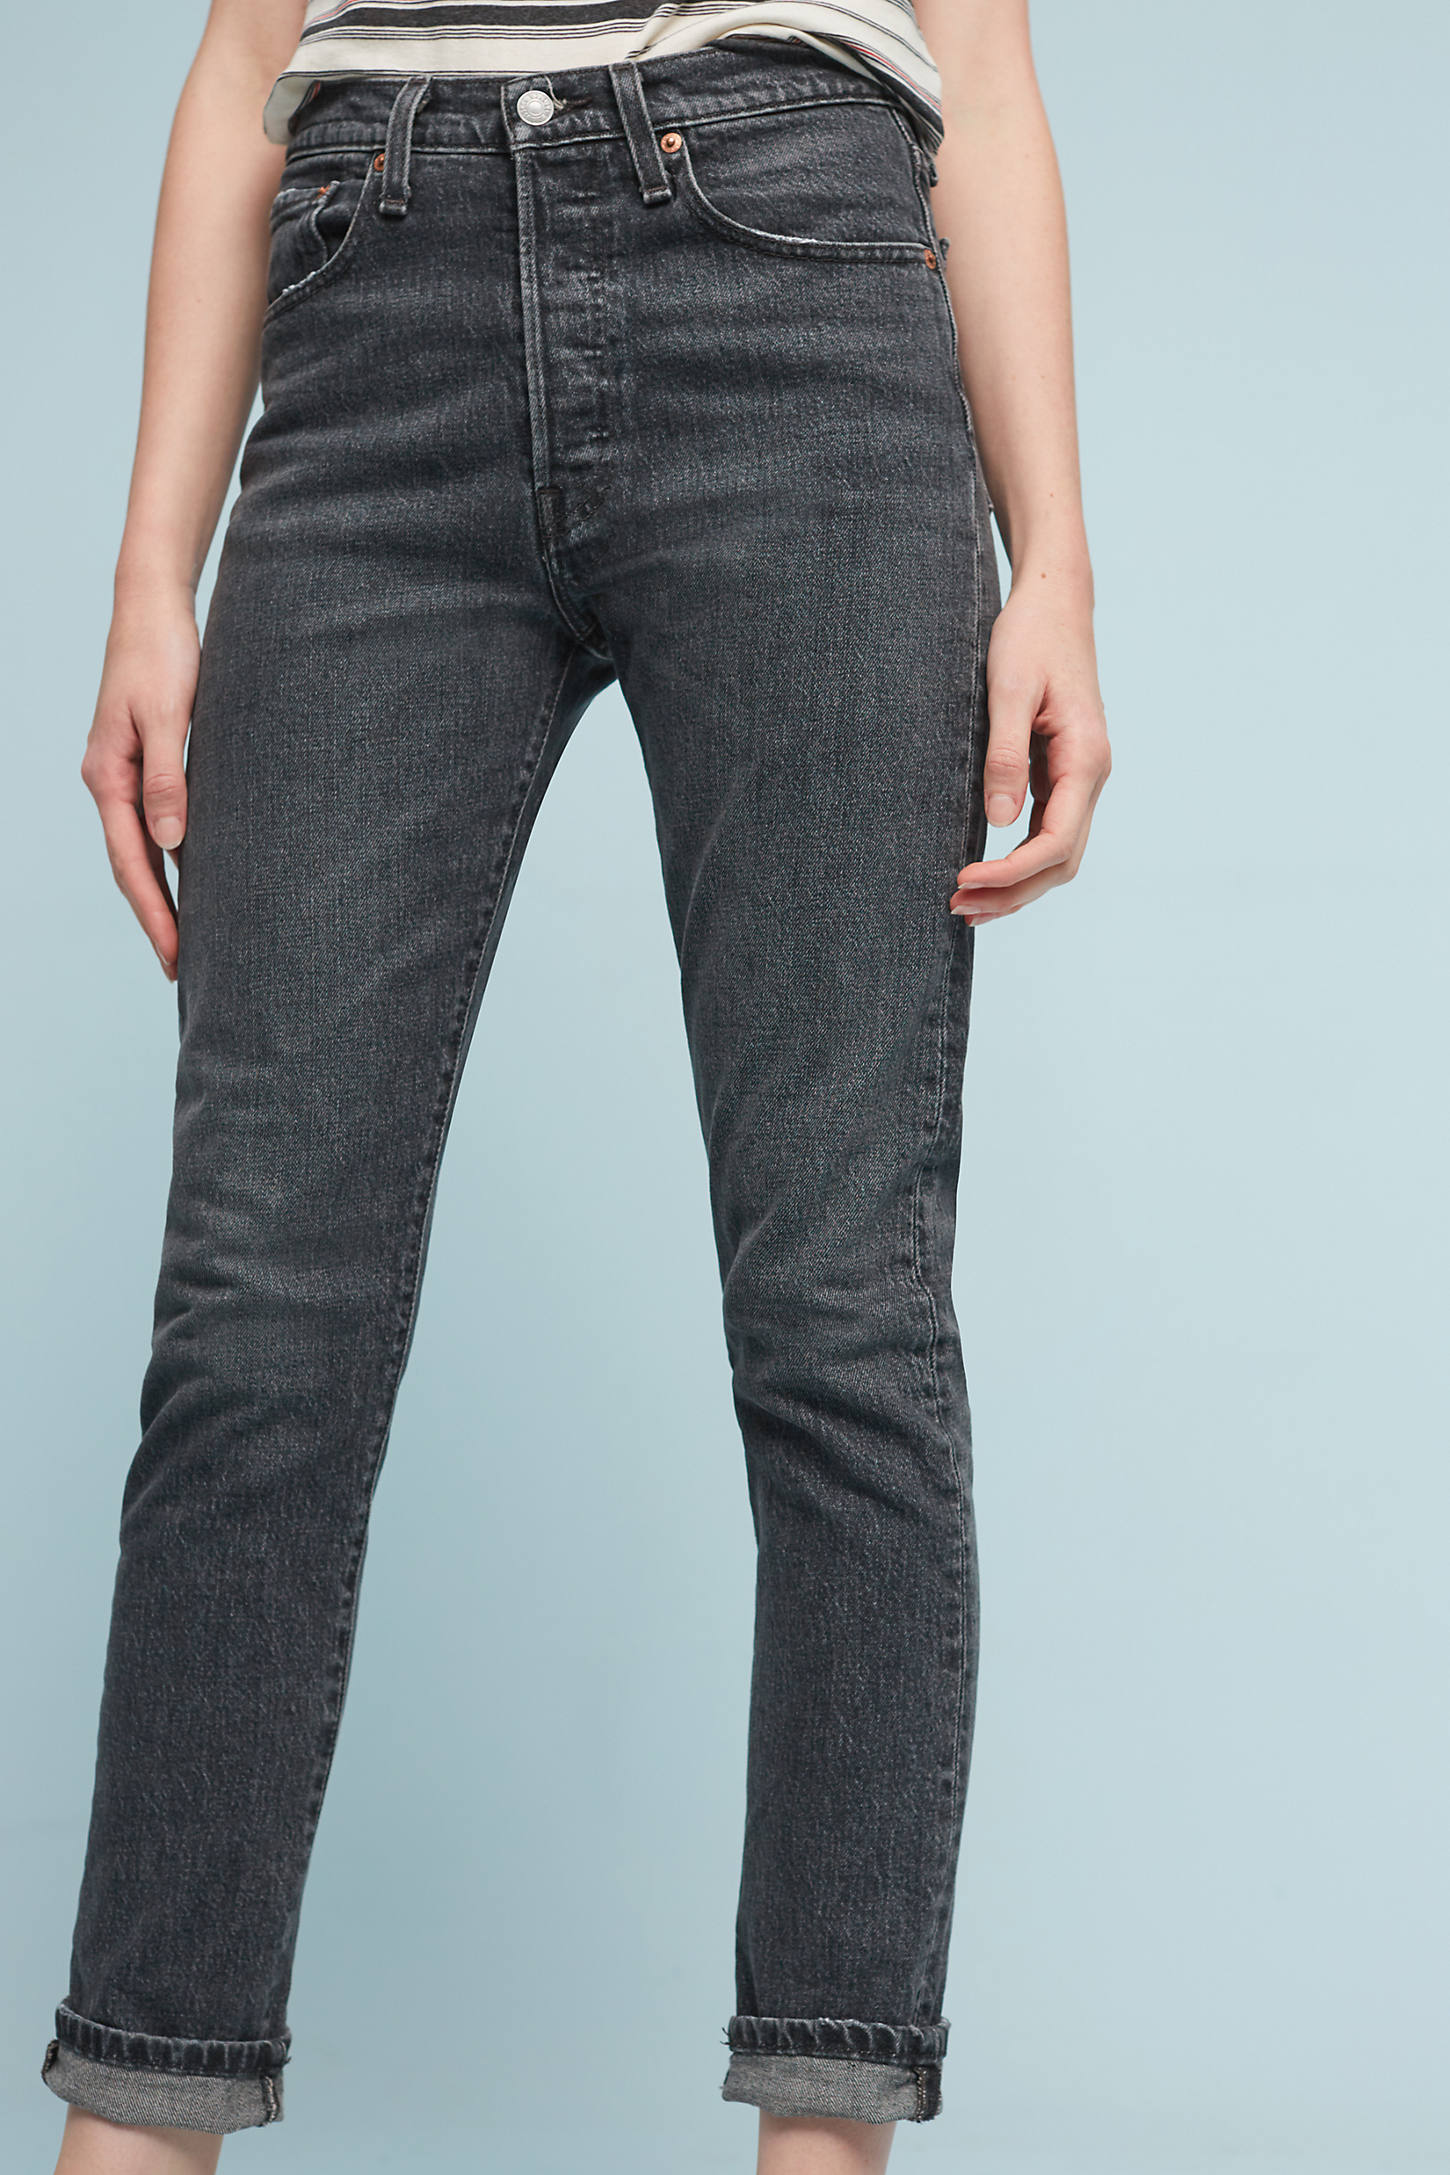 Levi's 501 Ultra High-Rise Skinny Jeans